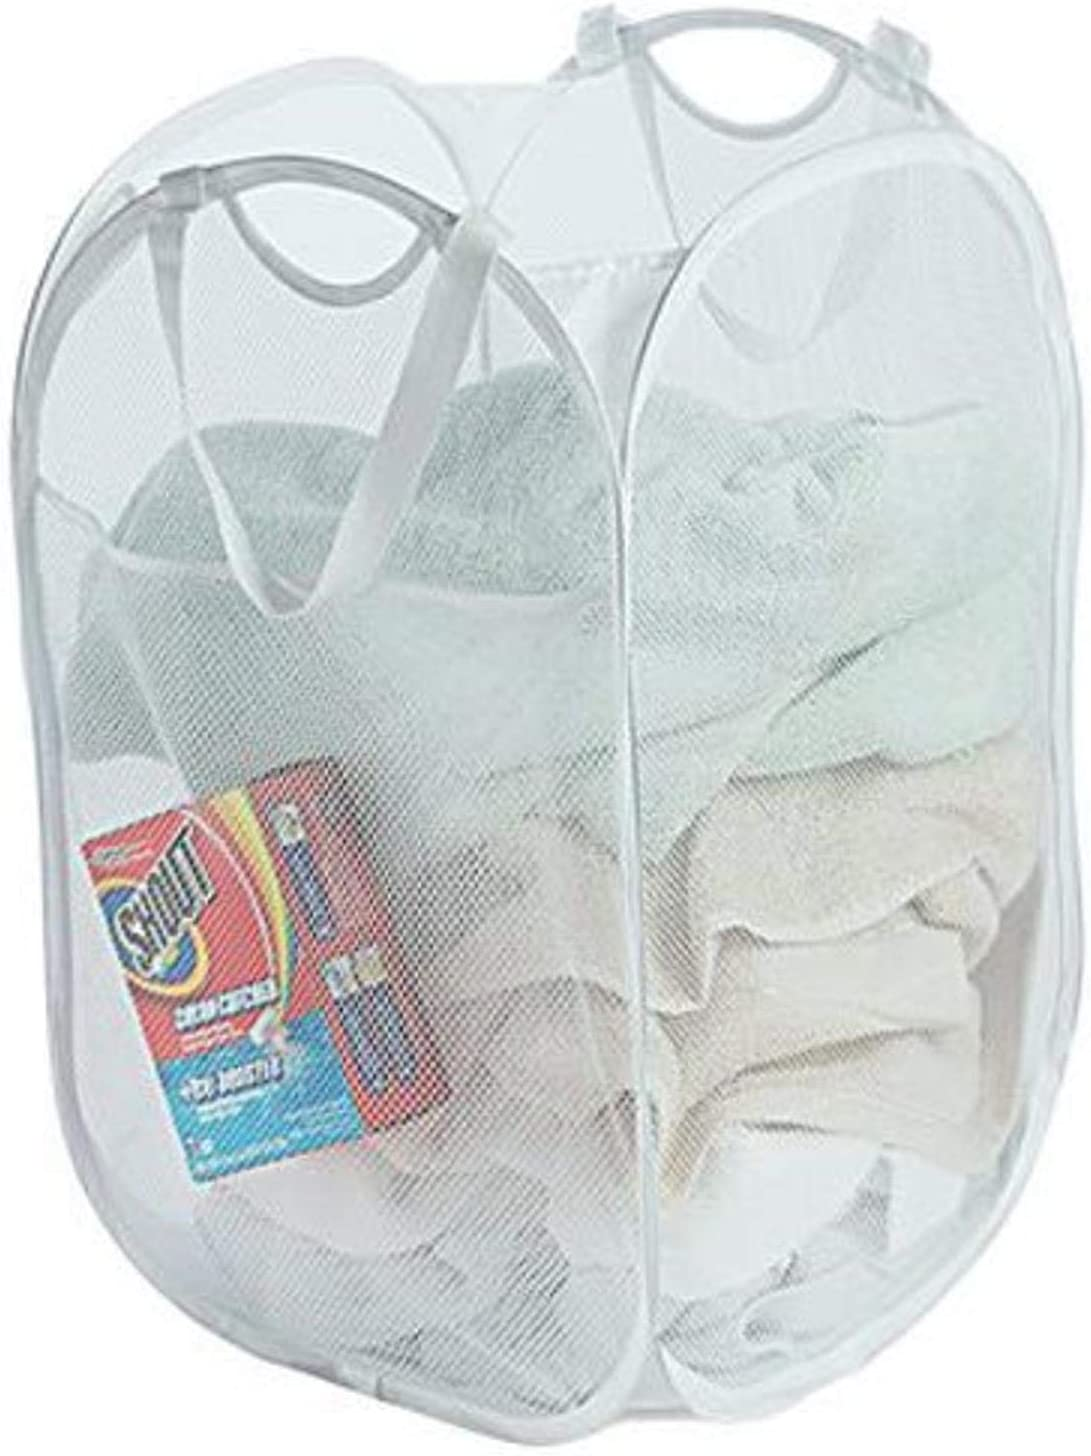 Smart Design Super beauty product restock quality top Deluxe Pop-Up Laundry Hamper Easy Carry w Side Handles